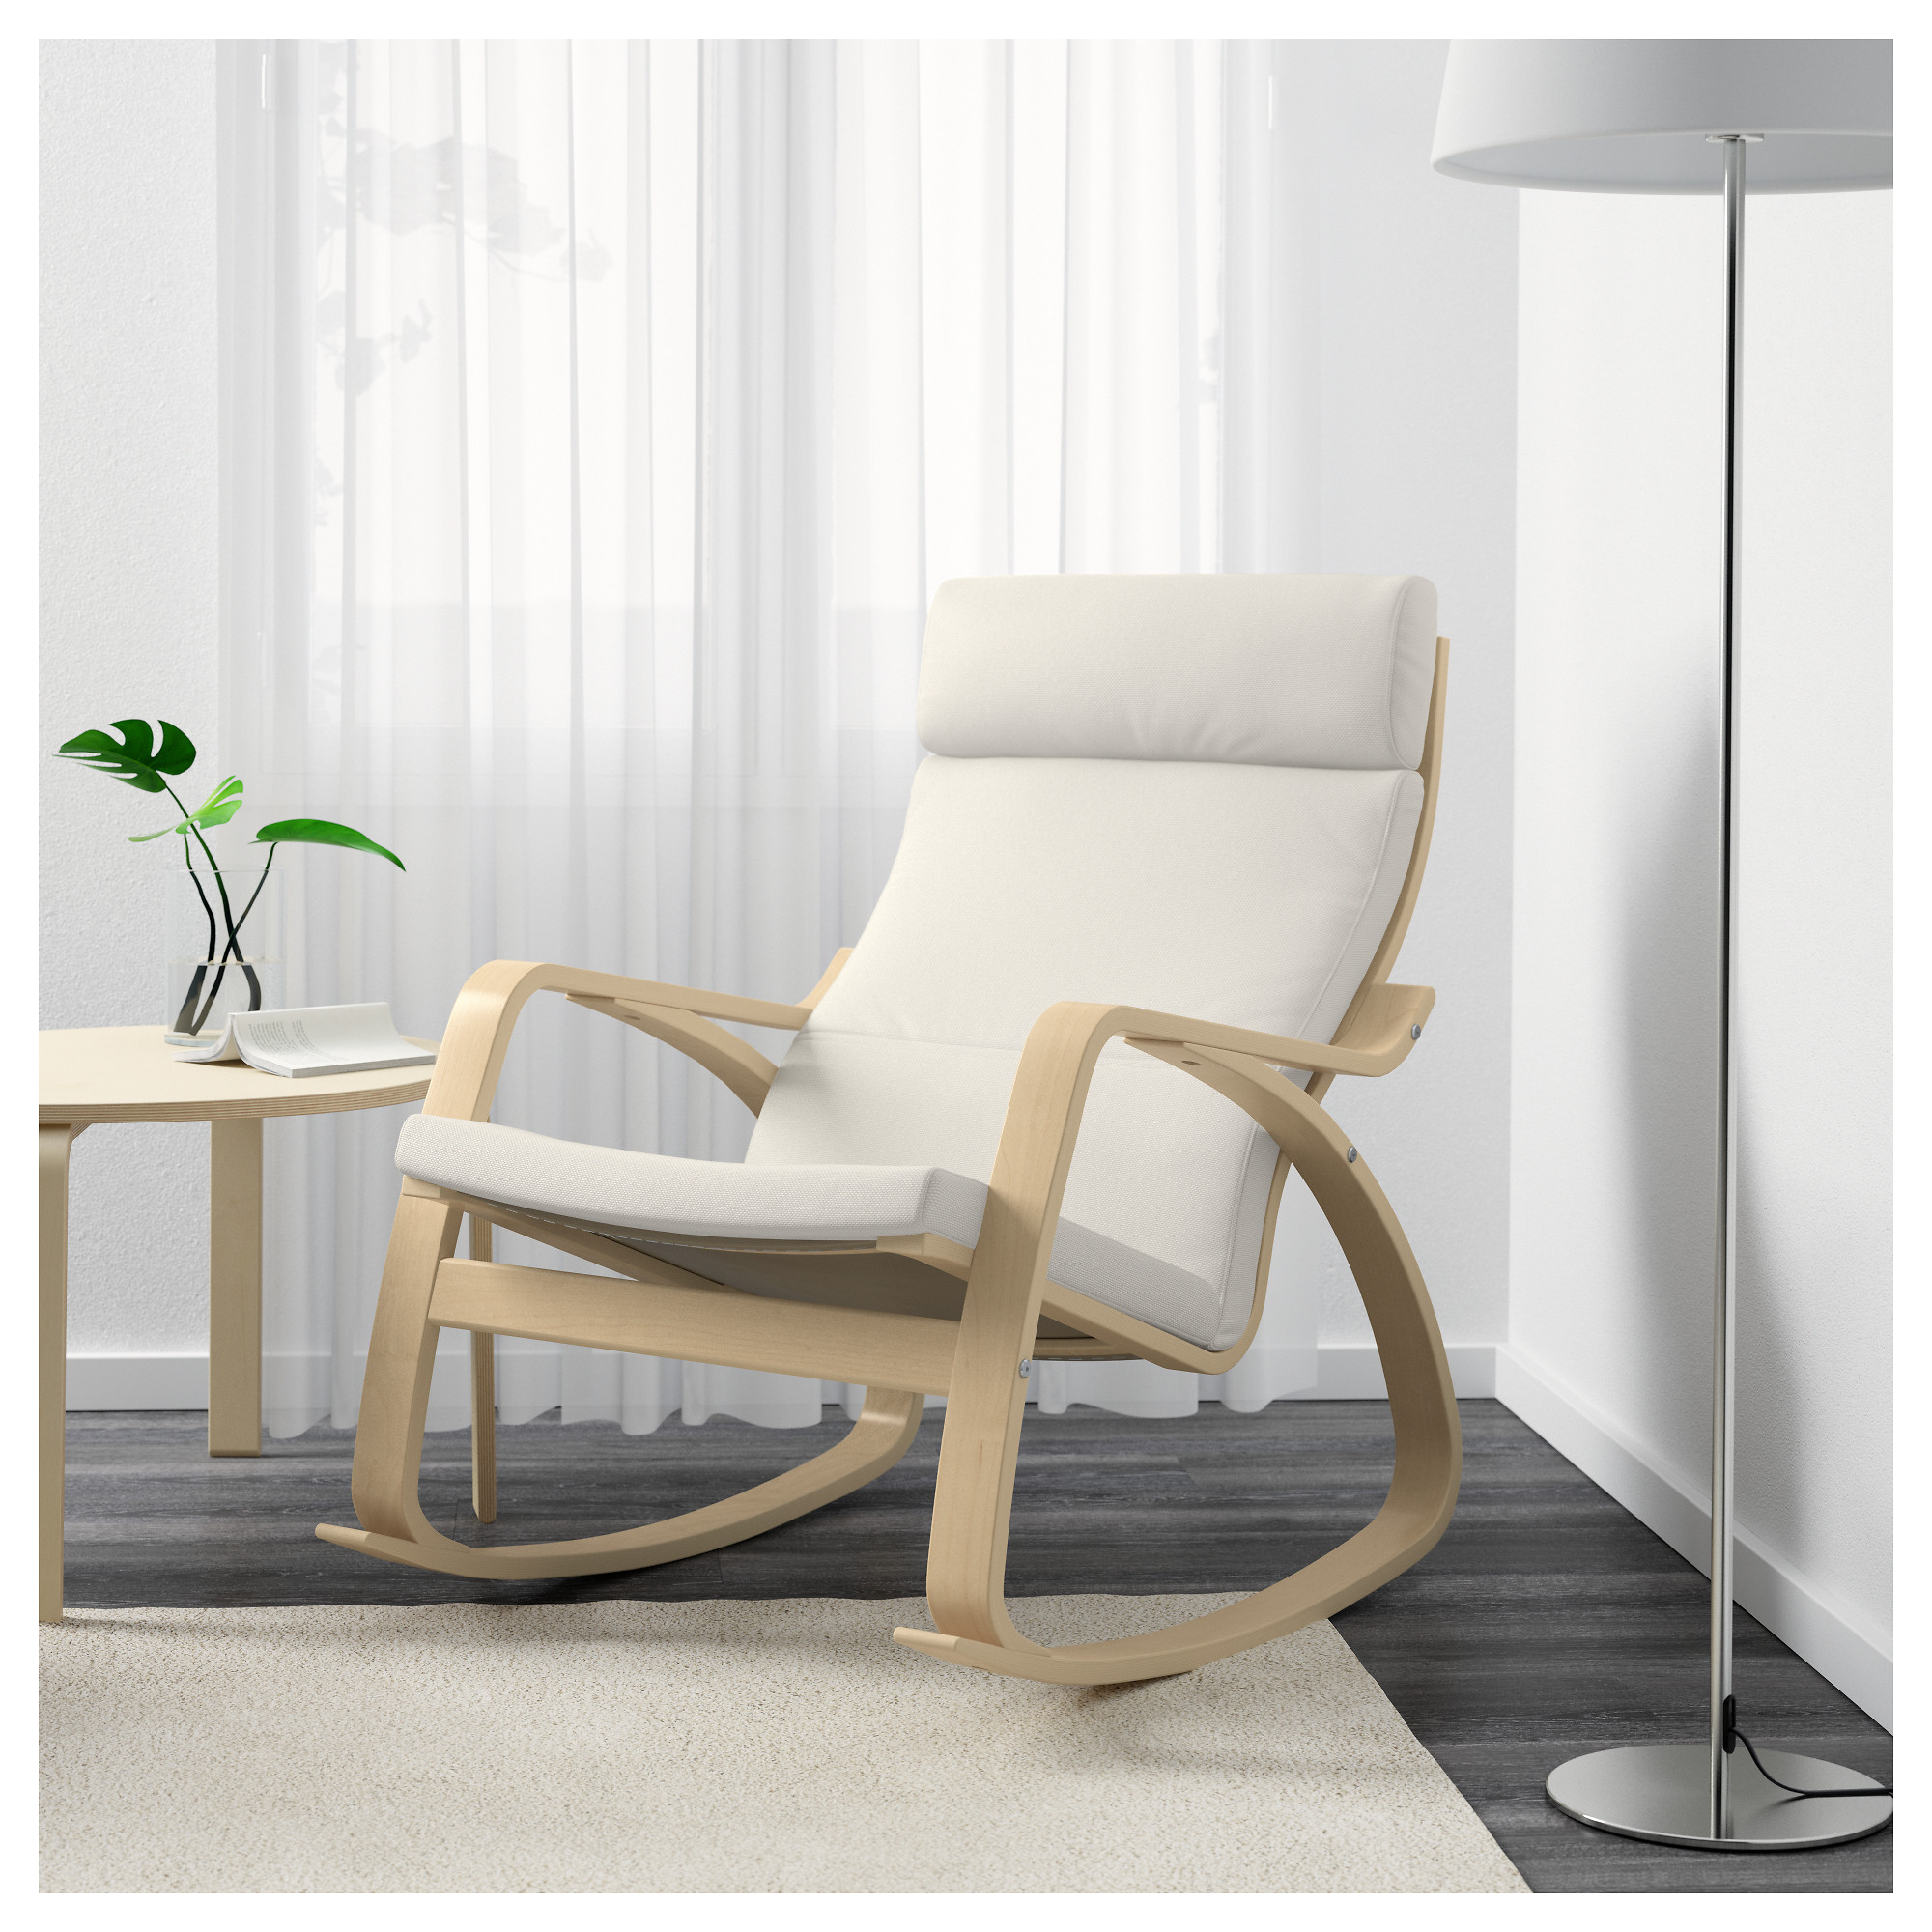 "PO""NG Rocking chair Finnsta grey IKEA"